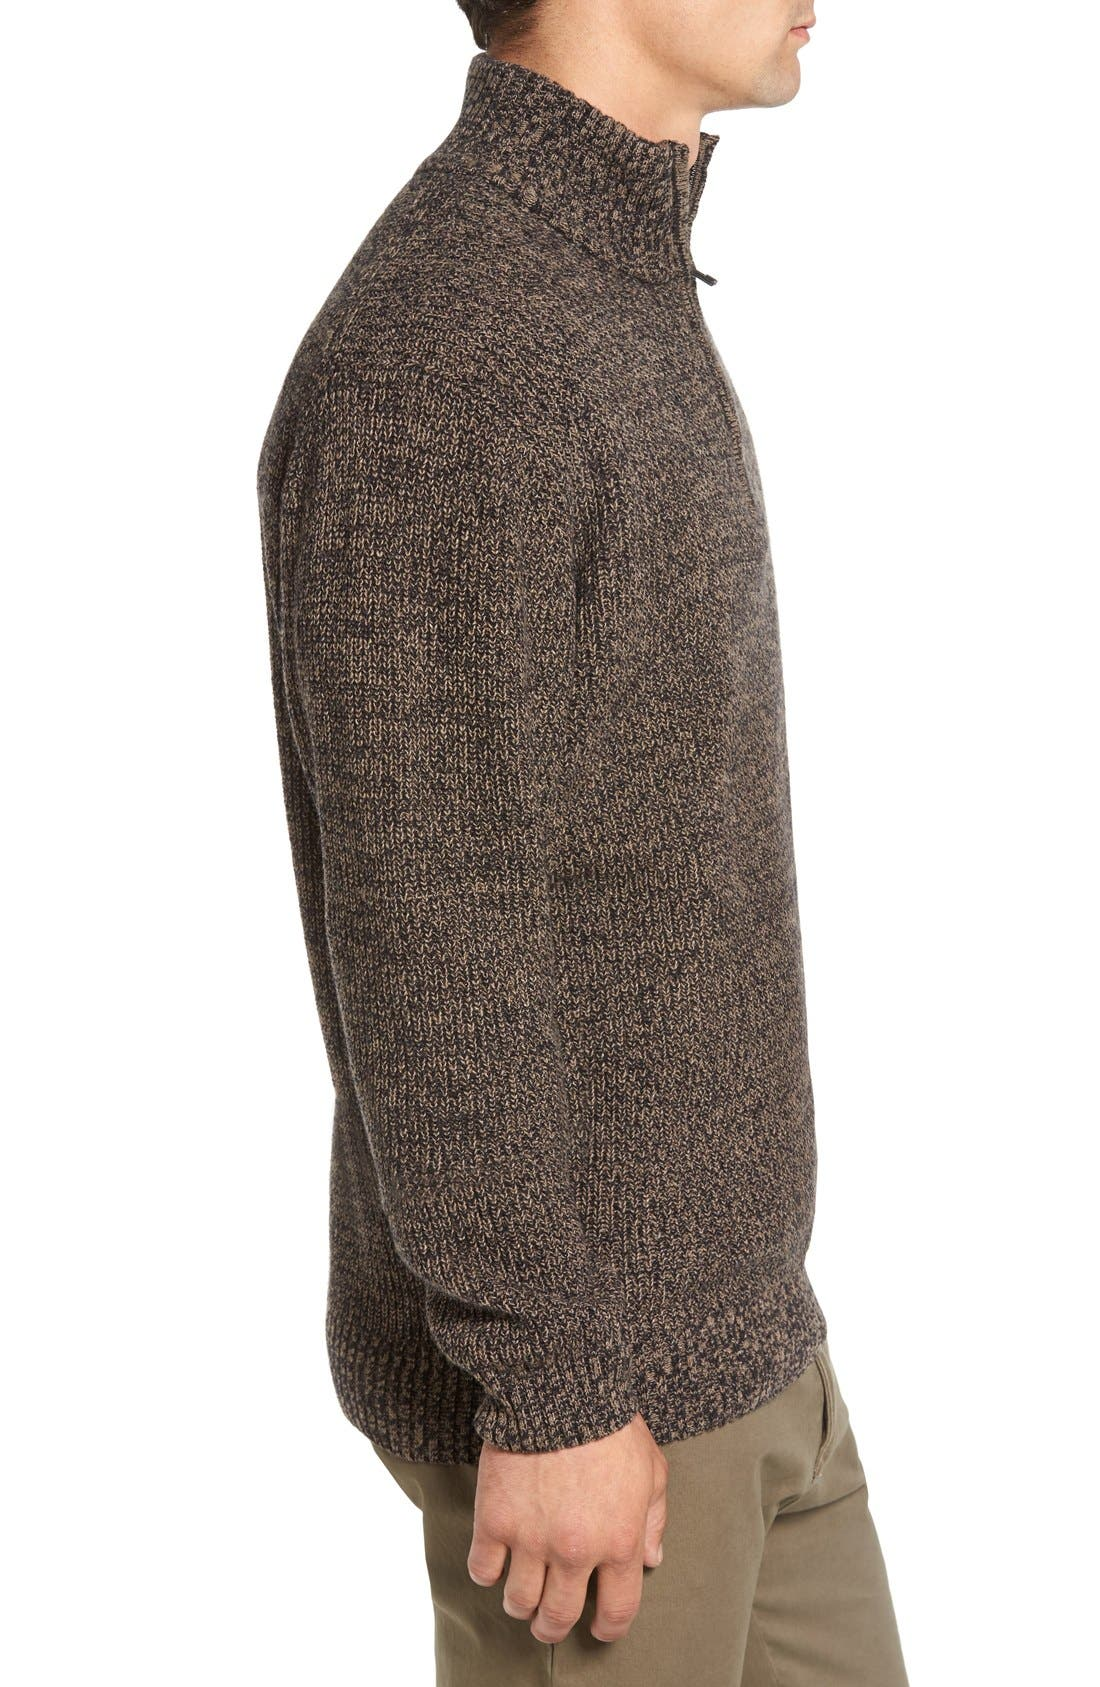 'Woodglen' Herringbone Knit Lambswool Quarter Zip Sweater,                             Alternate thumbnail 3, color,                             200